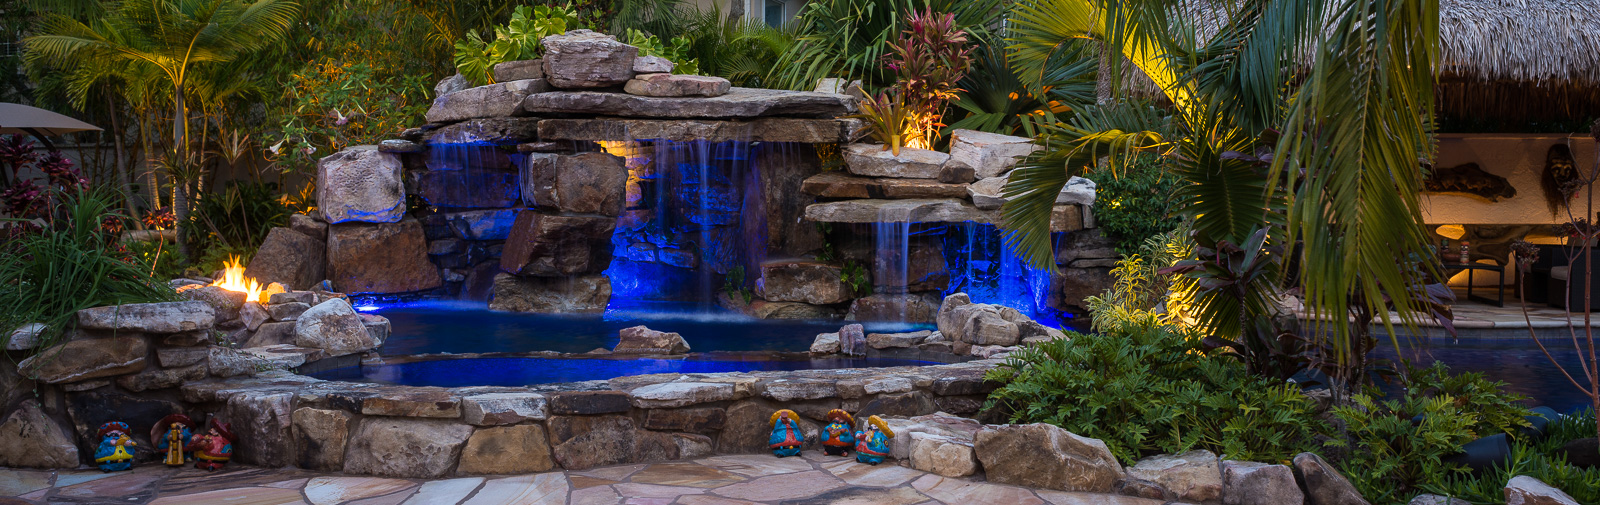 Custom Rock Waterfall Pool with Grotto, Spa, Natural Stream and Tiki Hut